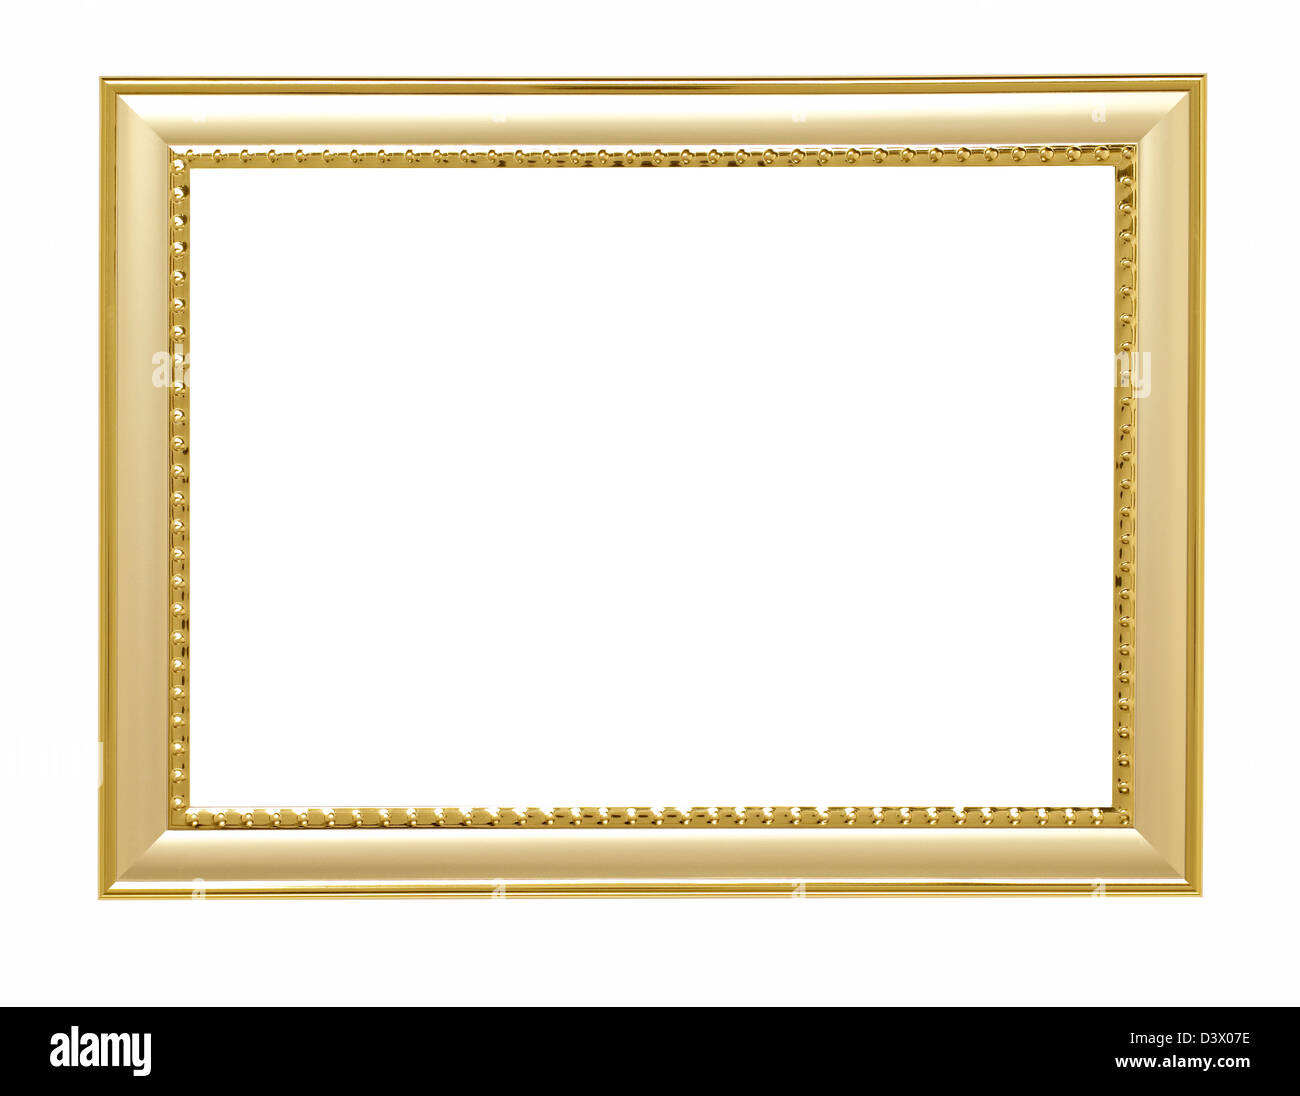 gold metal Picture frame - Stock Image